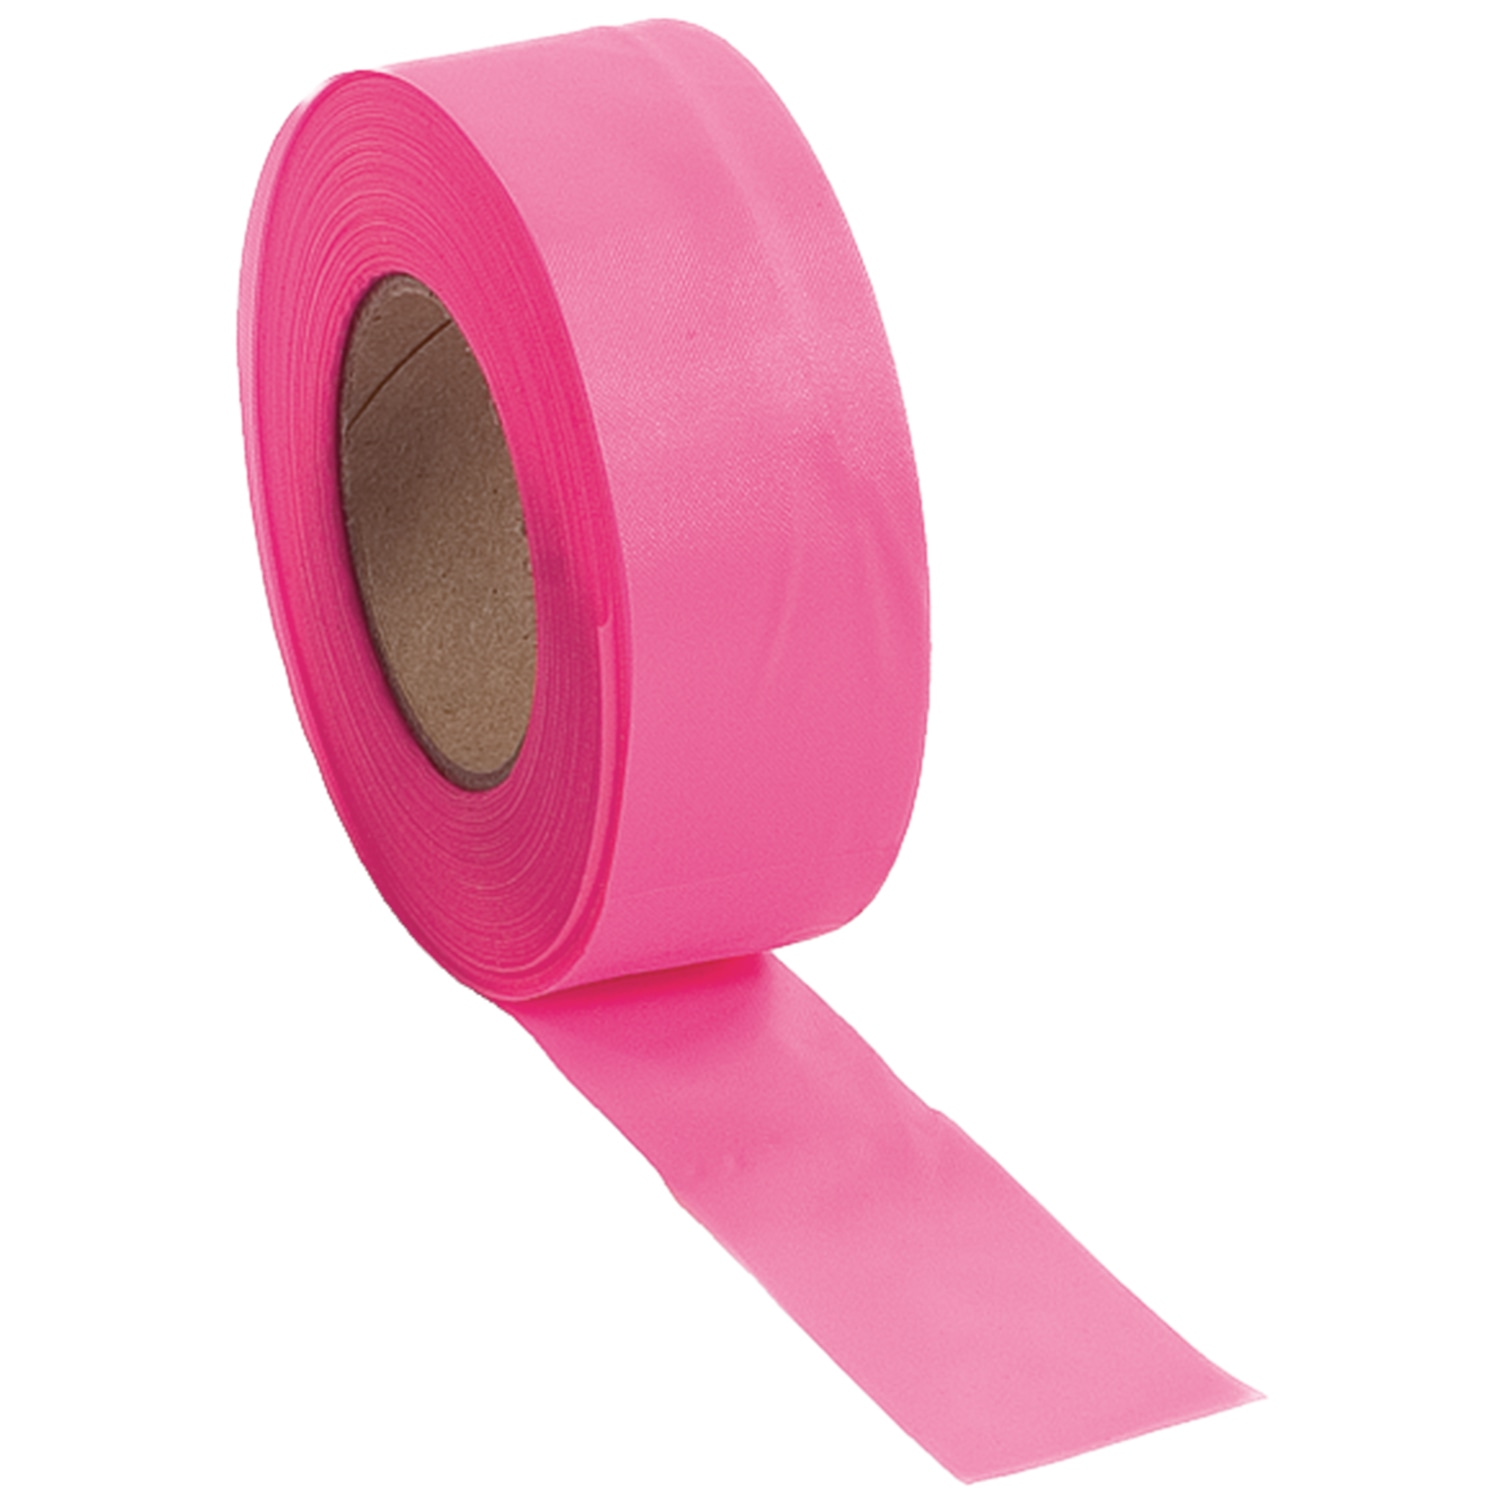 FLAGGING TAPE 1IN PINK